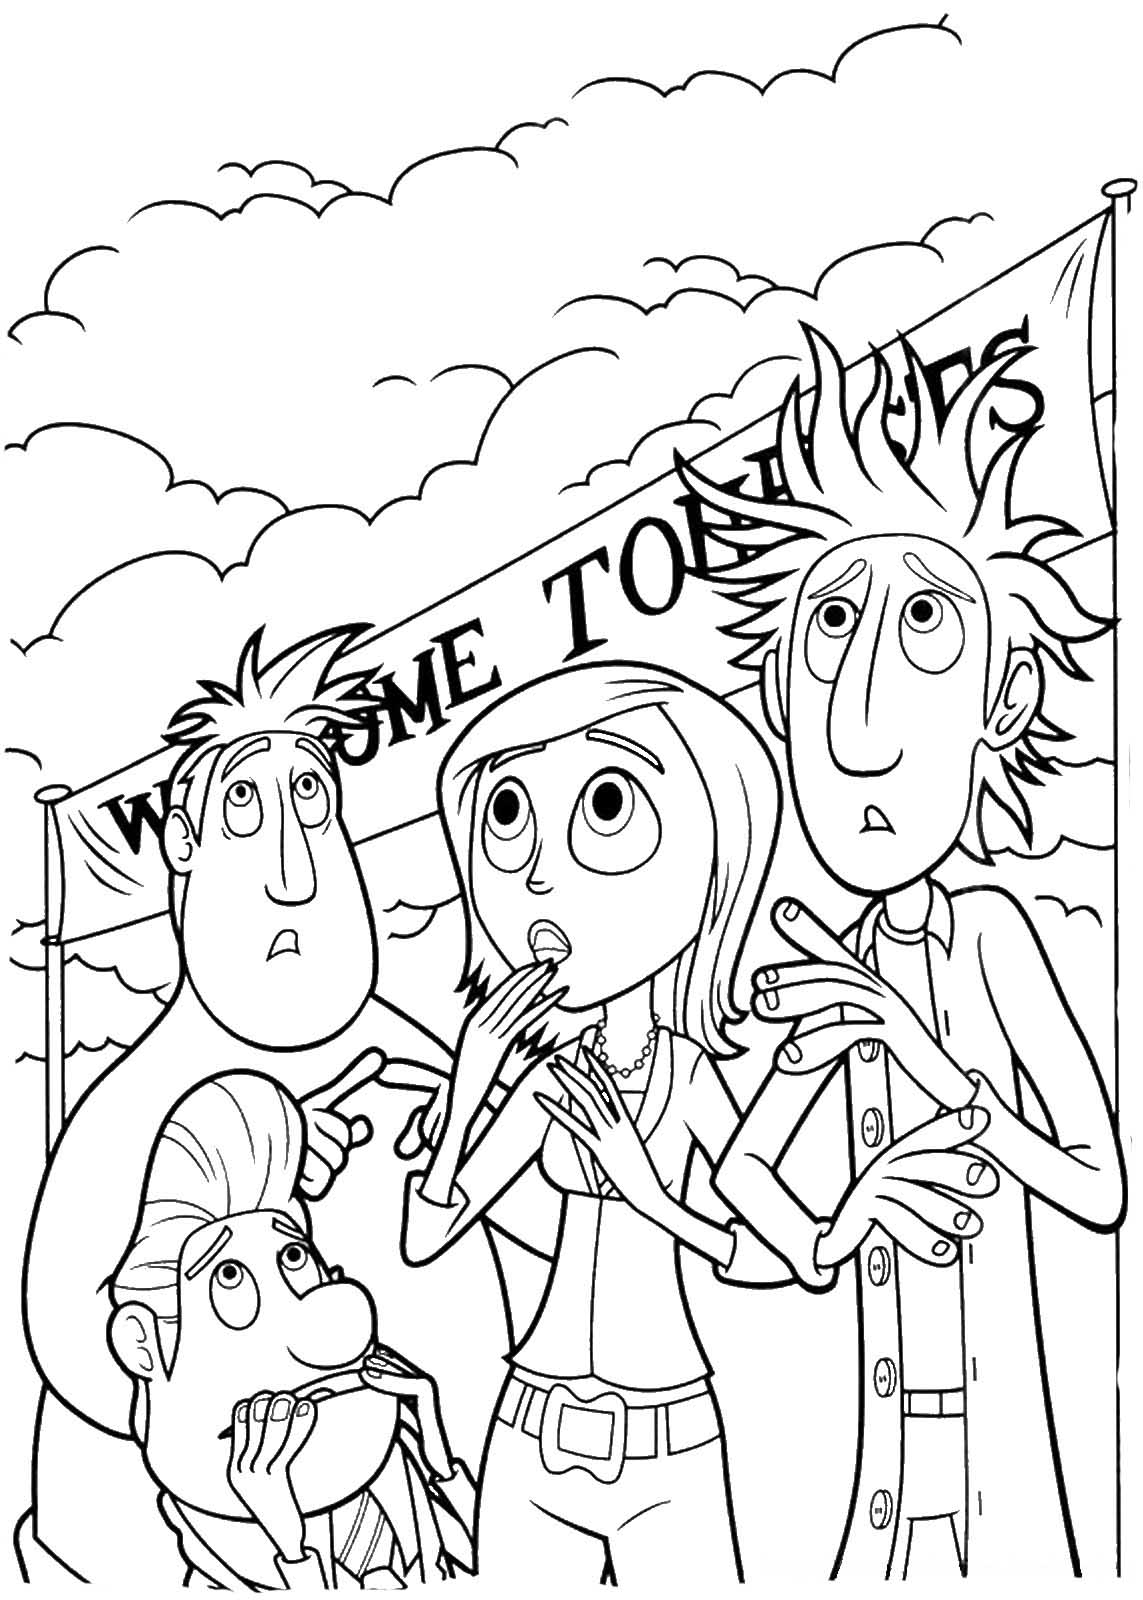 Cloudy With A Chance Of Meatballs Coloring Pages To